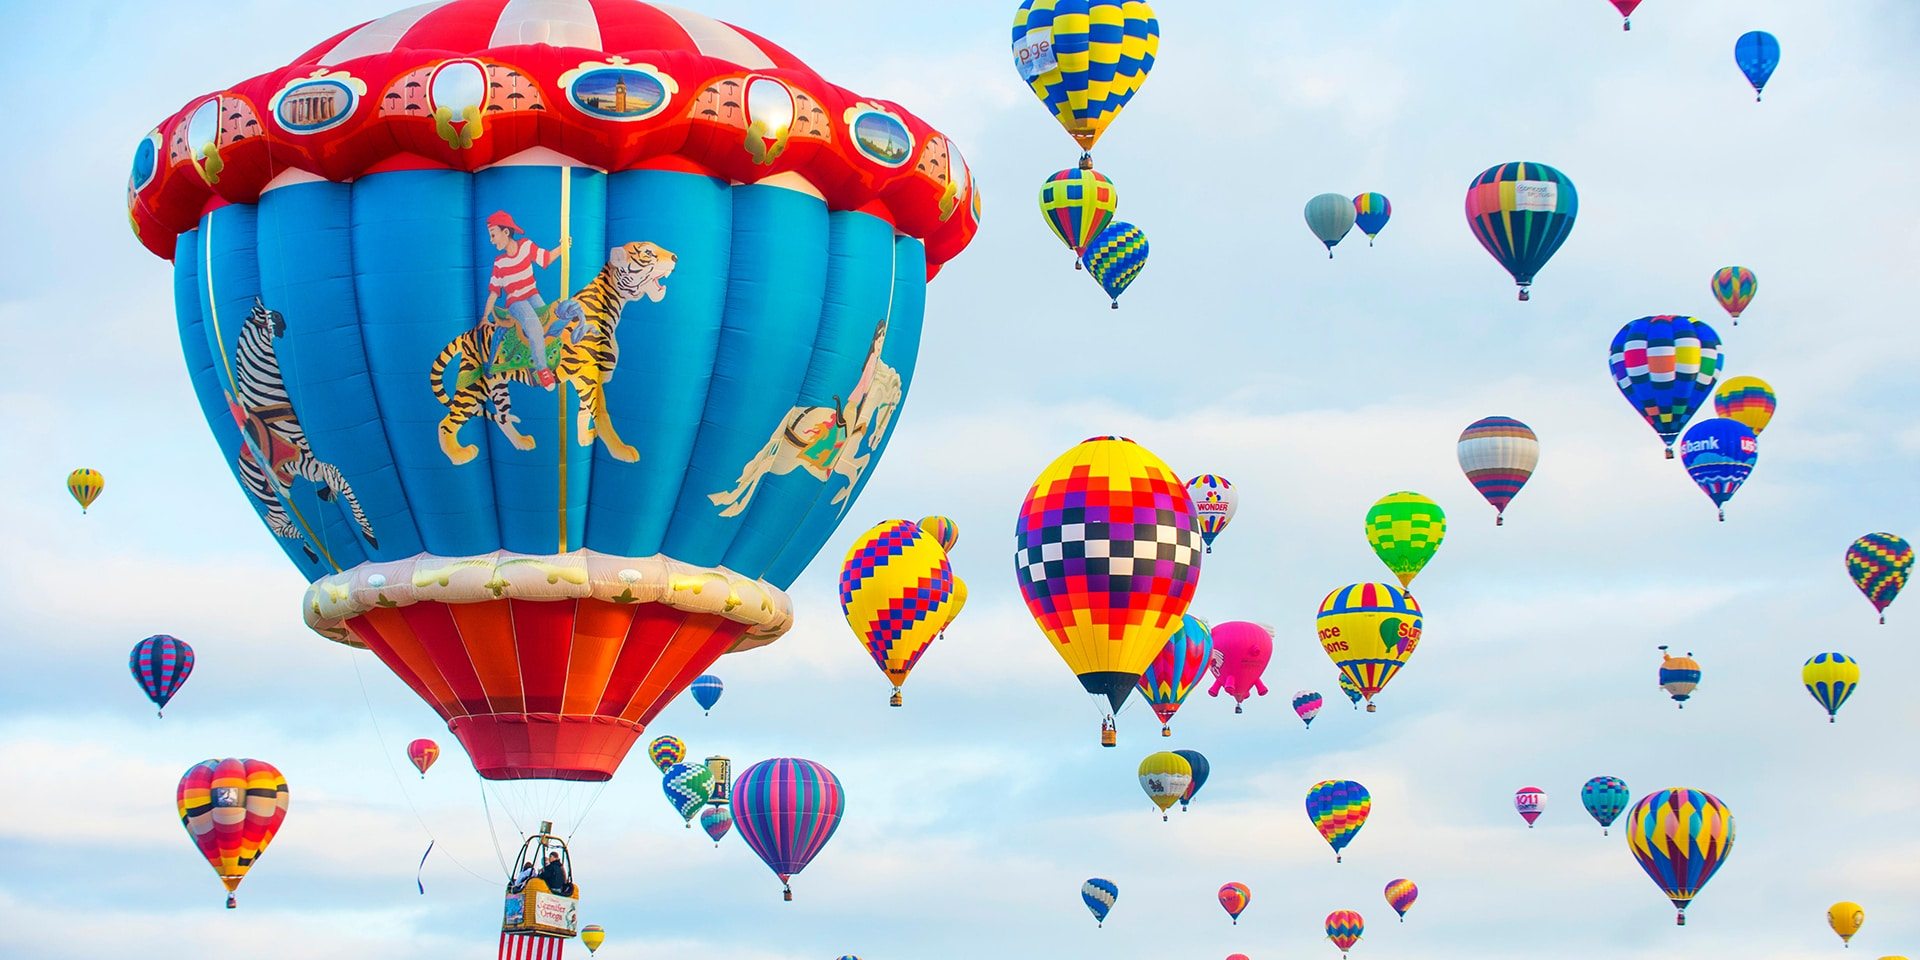 Road trips from Albuquerque to see air balloons.